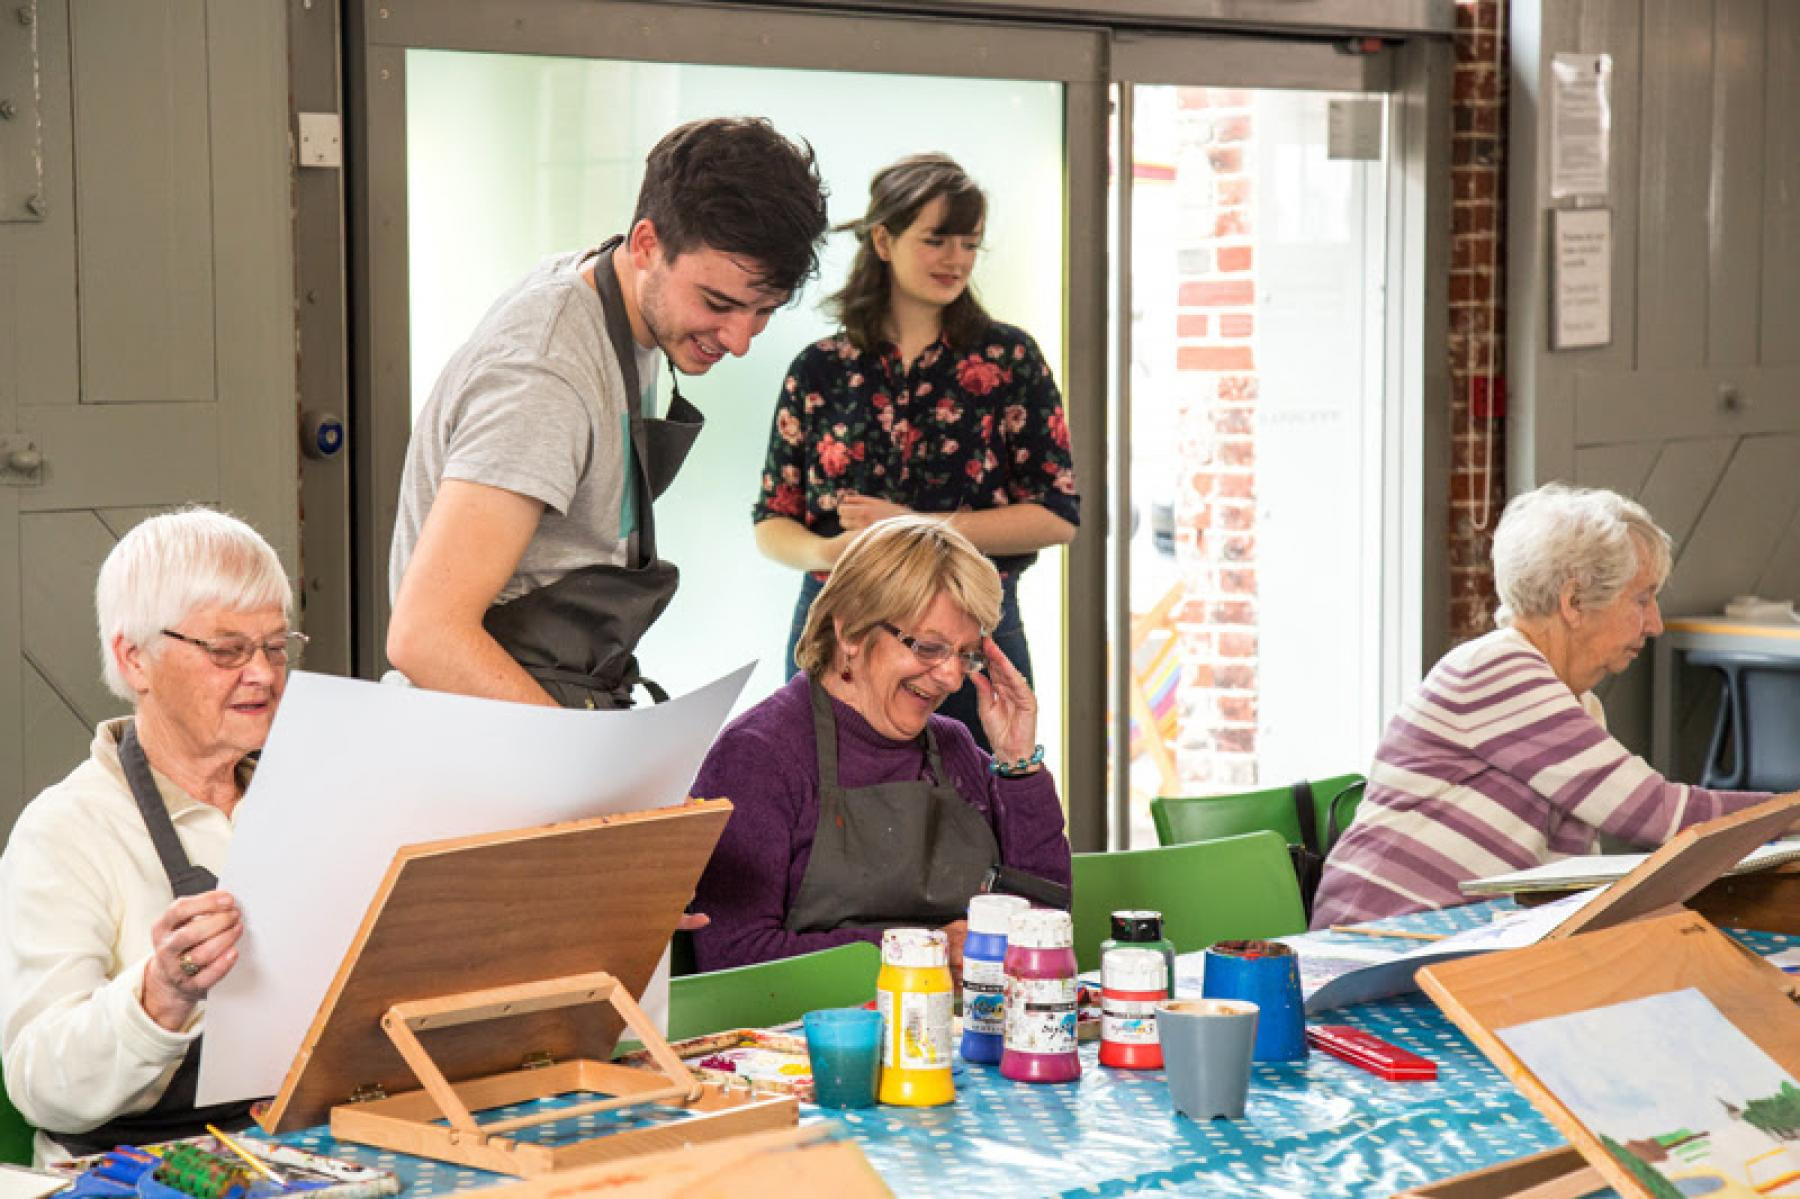 Aspex's Generate - arts workshop for people with dementia.